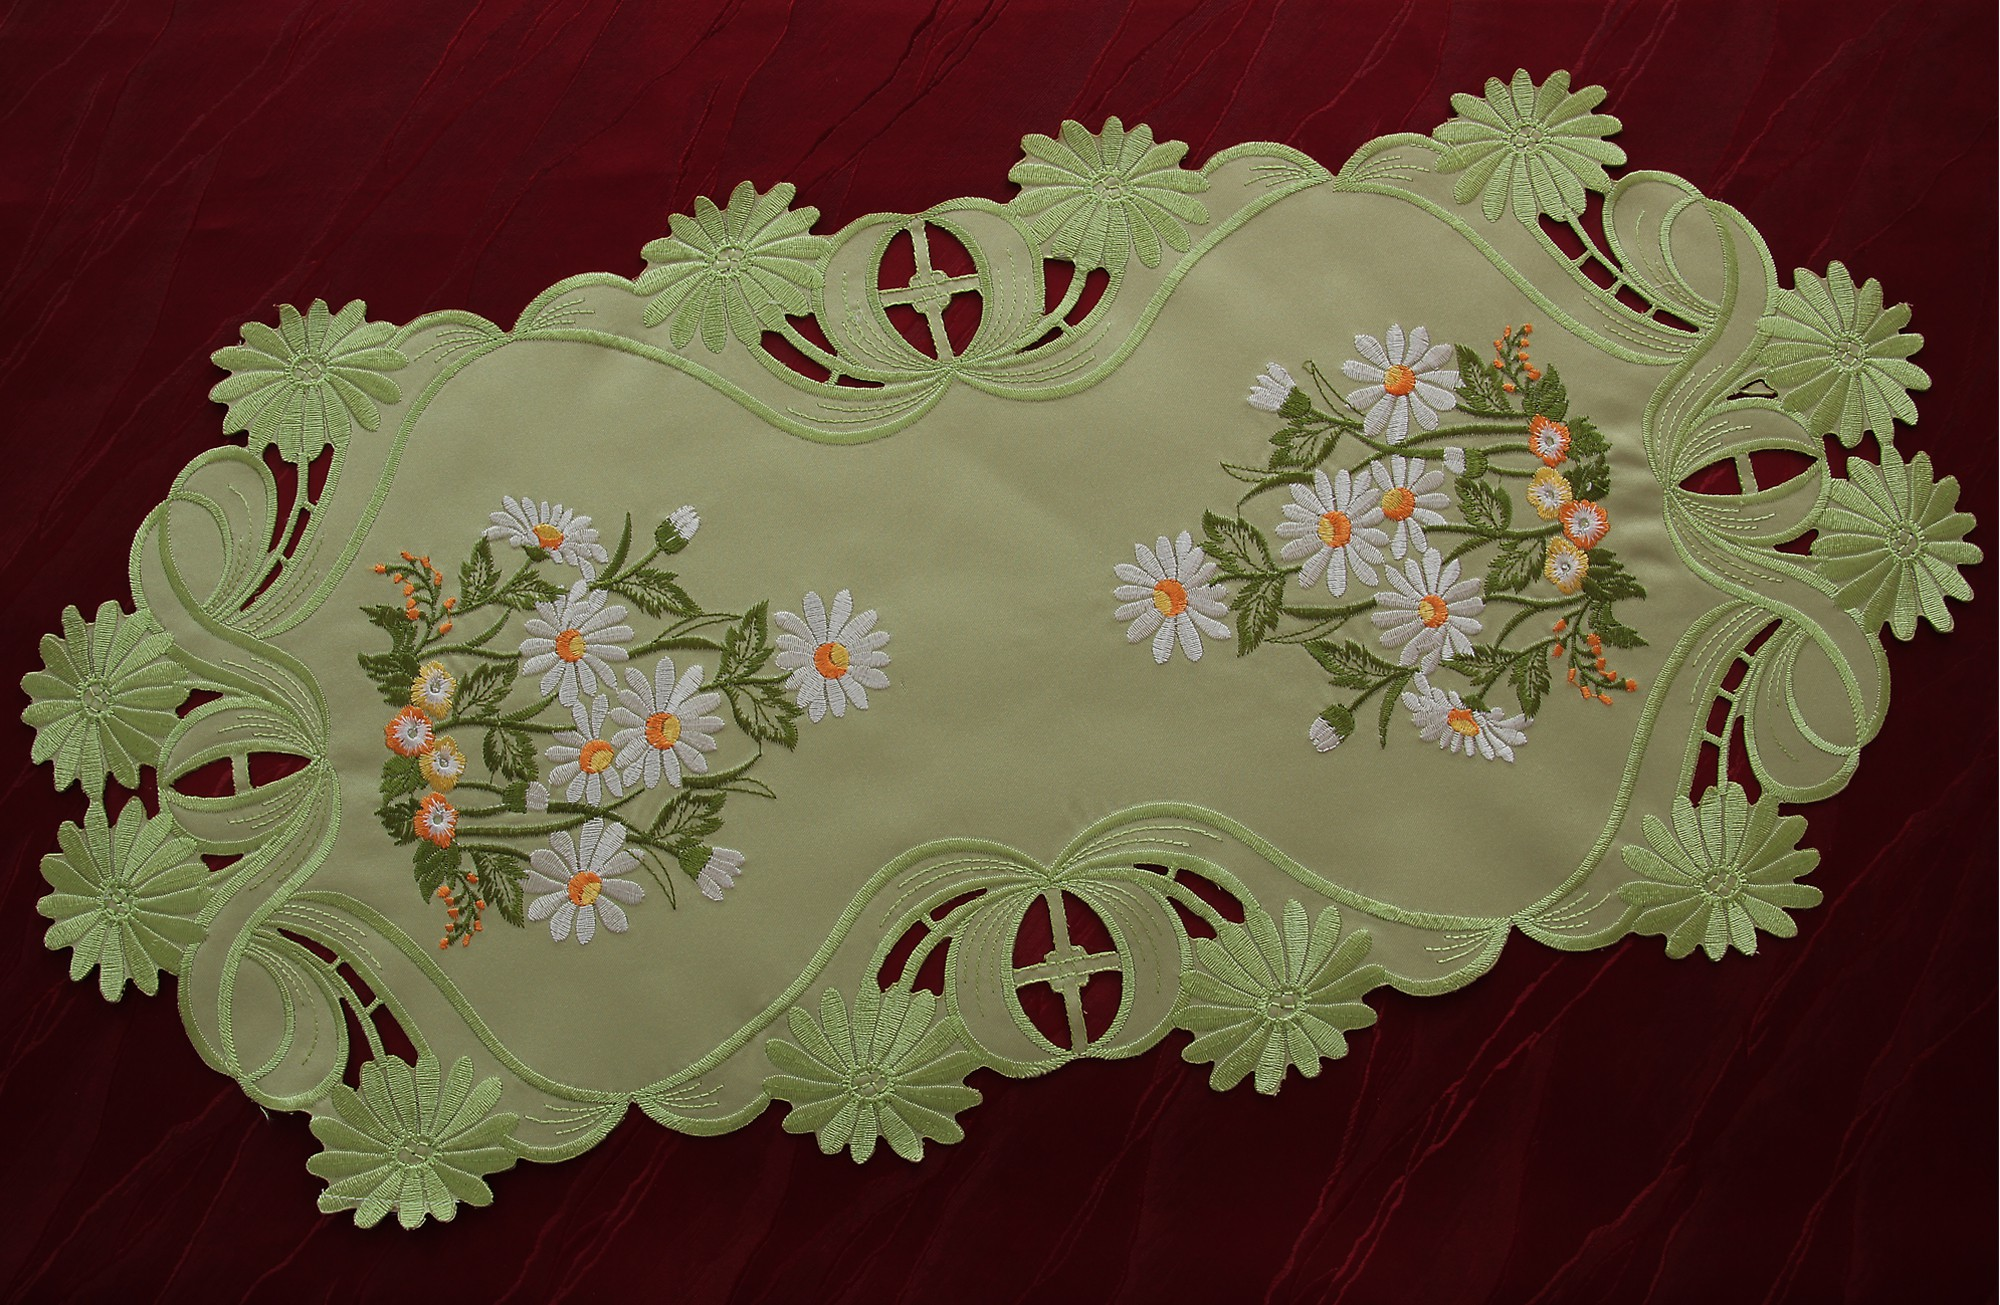 Green table runner tablecloth doily white marguerite daisy flower green table runner tablecloth doily white marguerite daisy izmirmasajfo